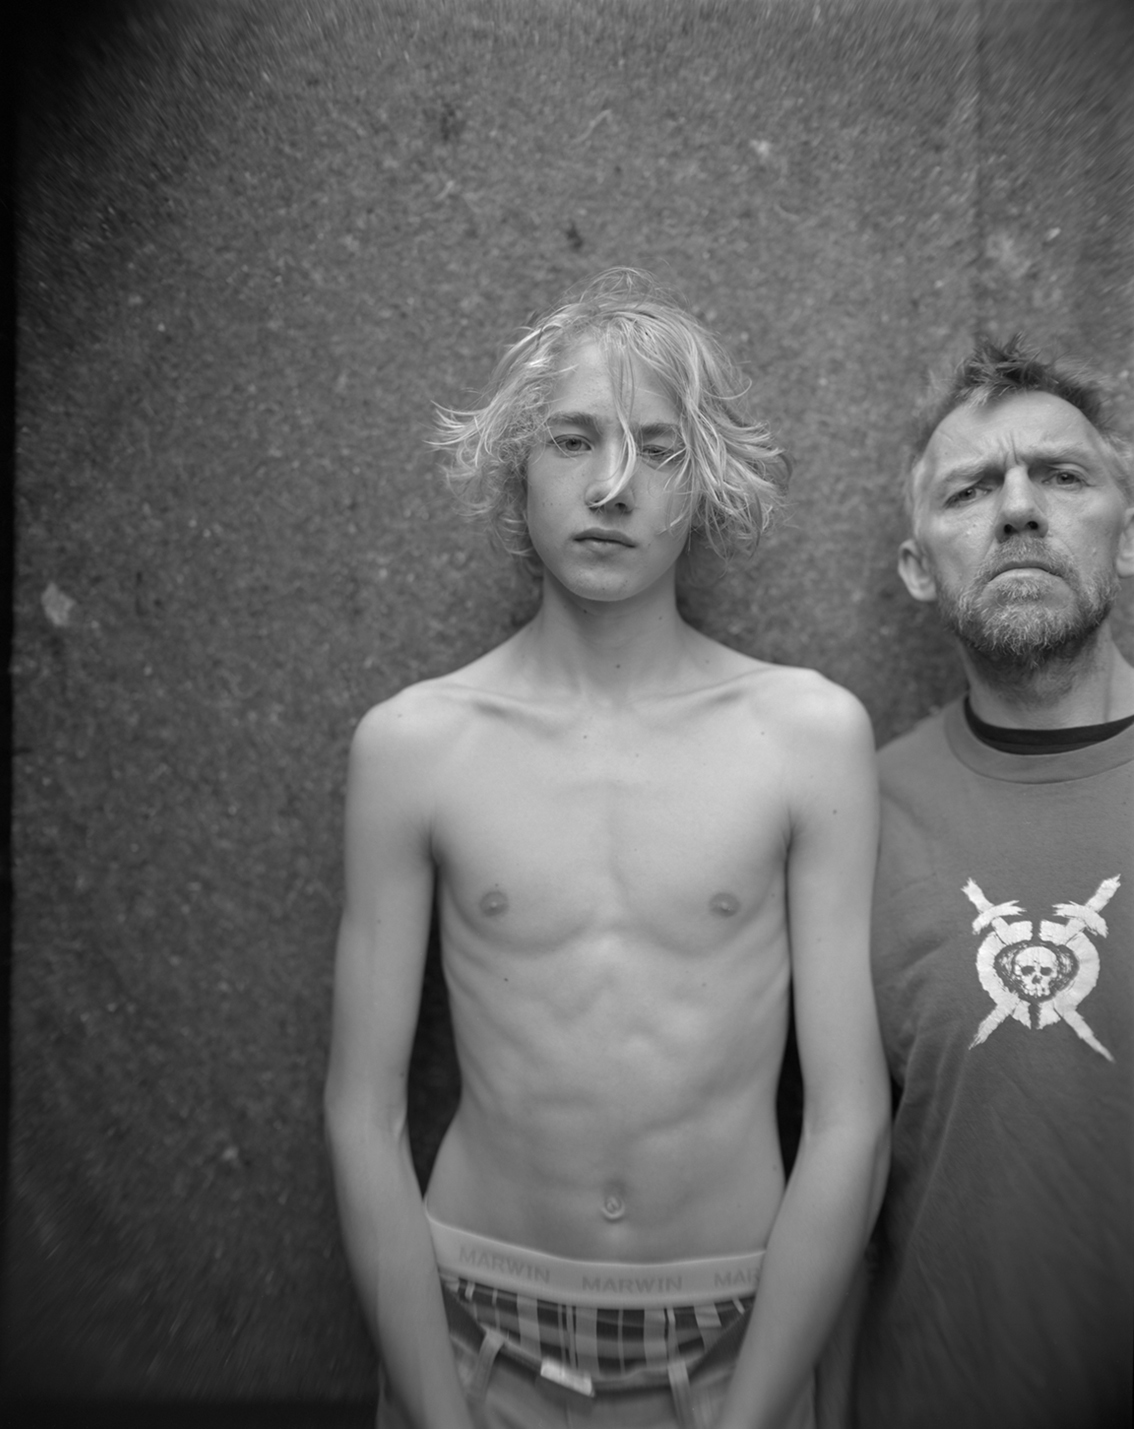 Jens Linus and Me, Oslo,  2012 Selenium toned gelatin silver print 10 x 8 inches Edition of 12